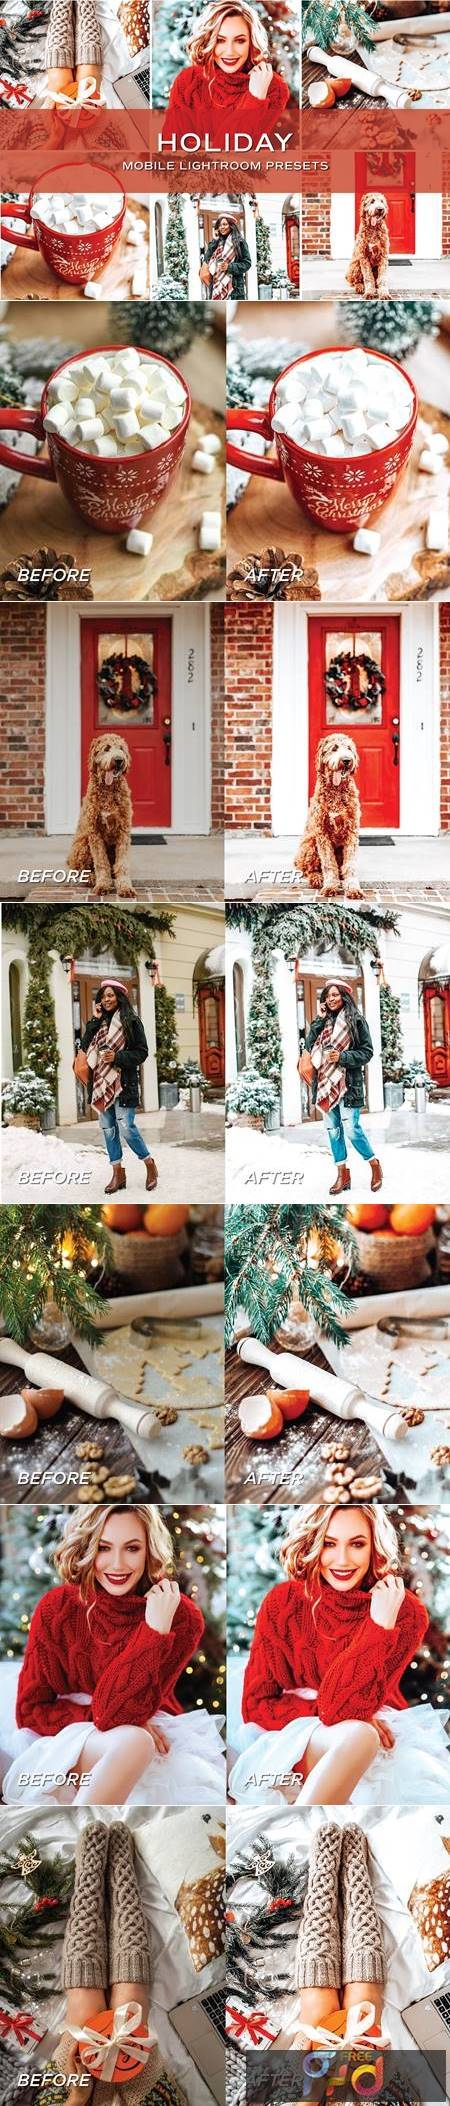 5 Bright Holiday Lightroom Presets 5701798 1